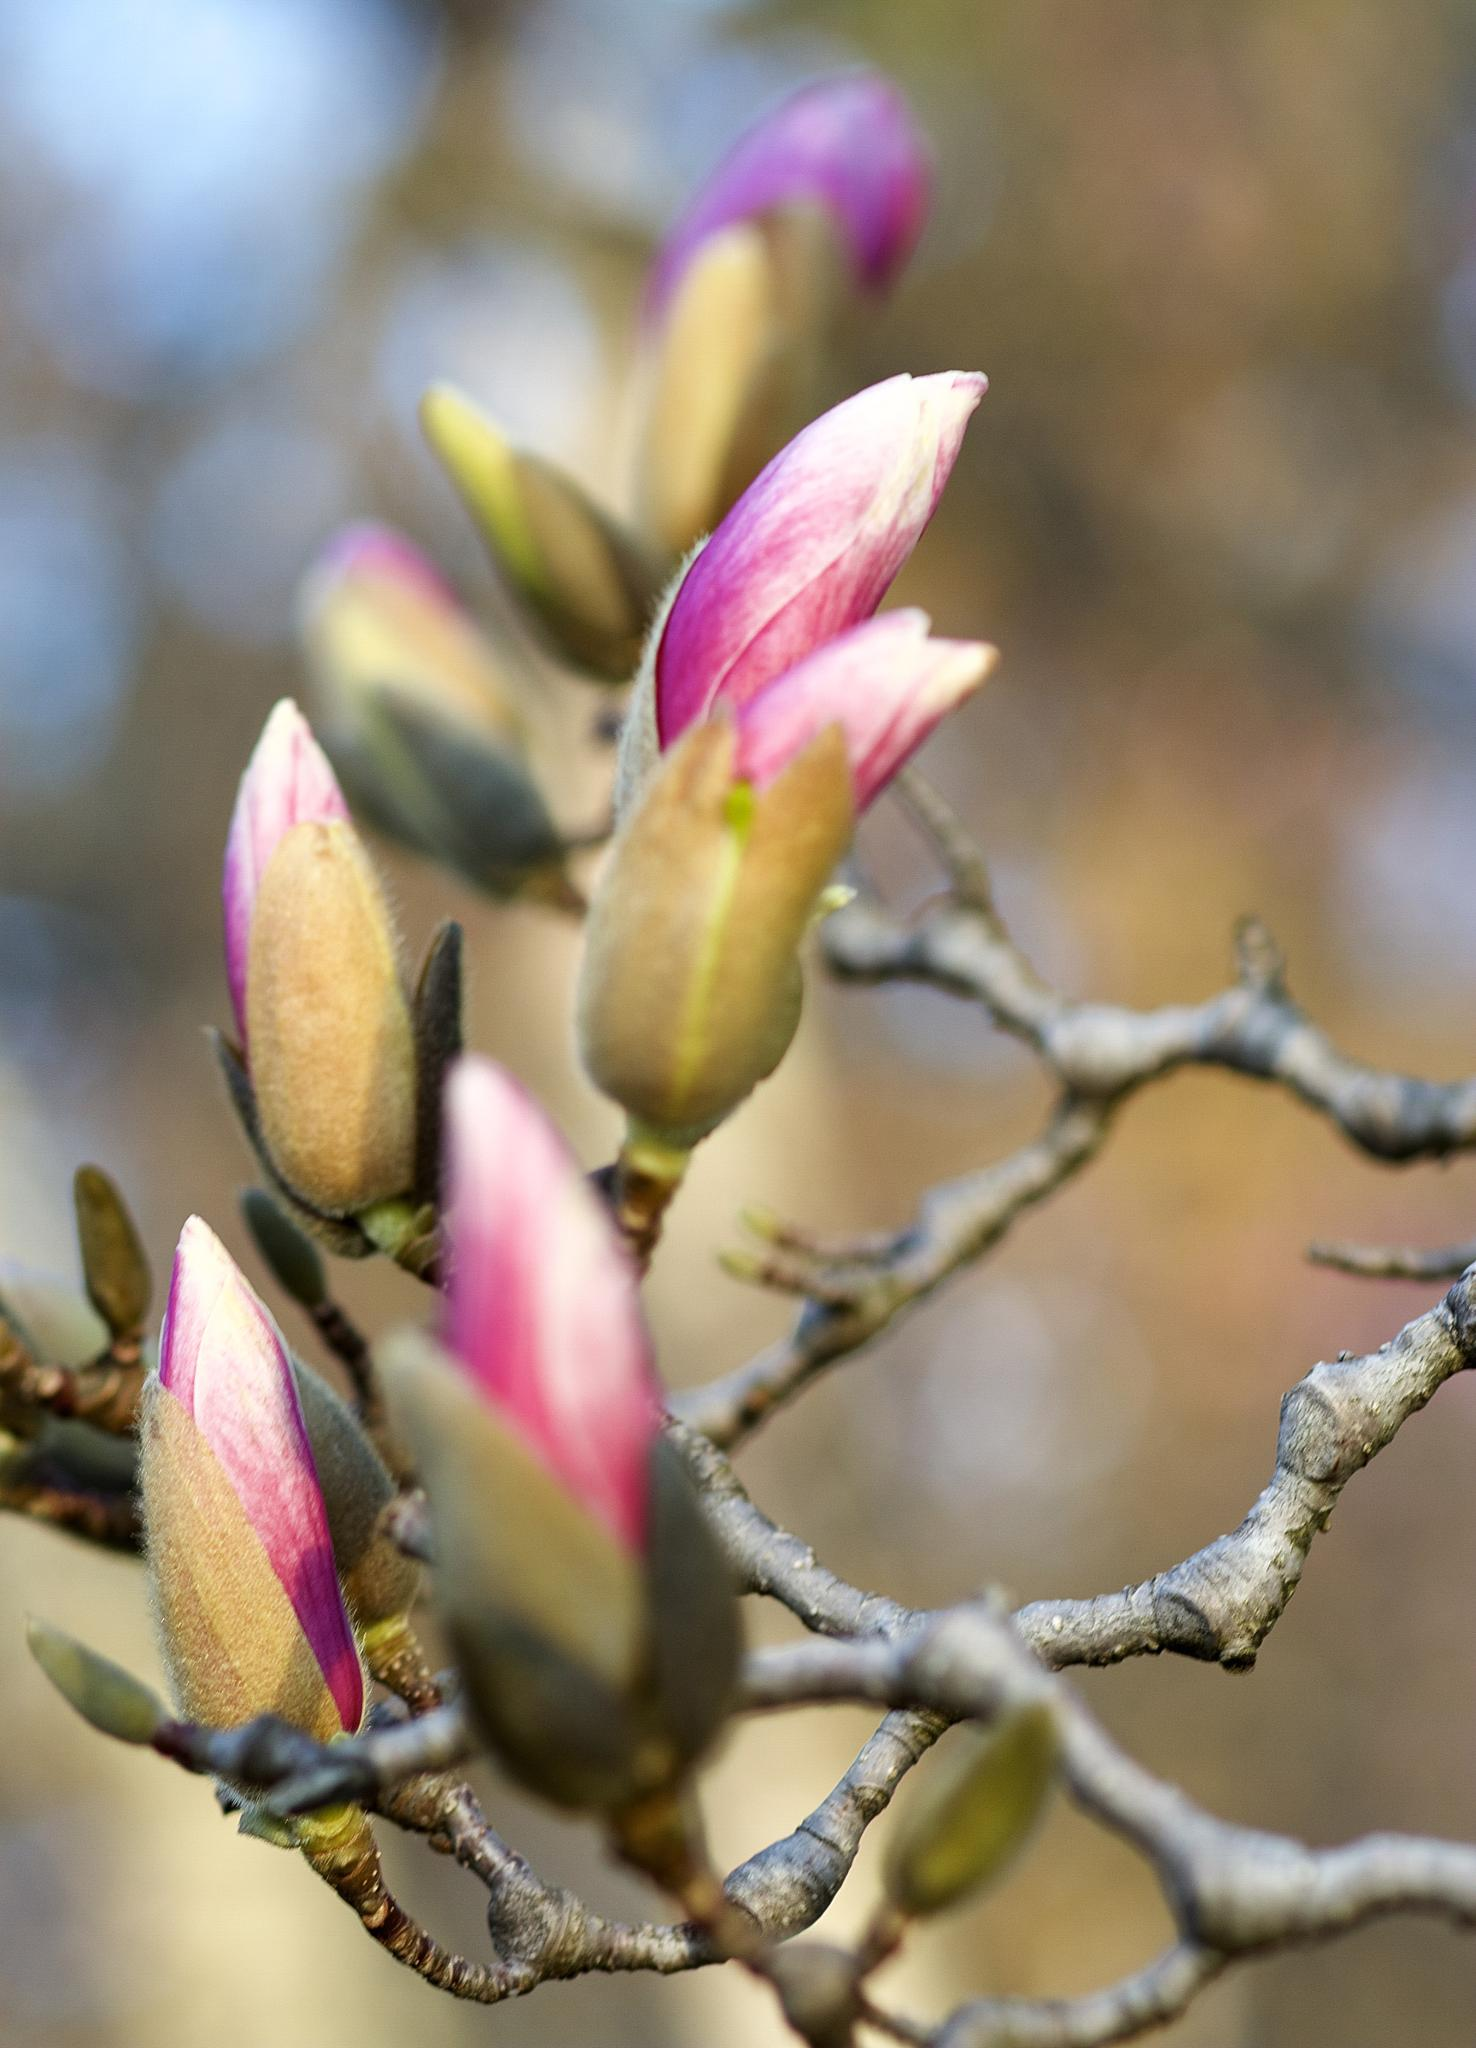 Magnolia buds bursting open... by Ronwood777